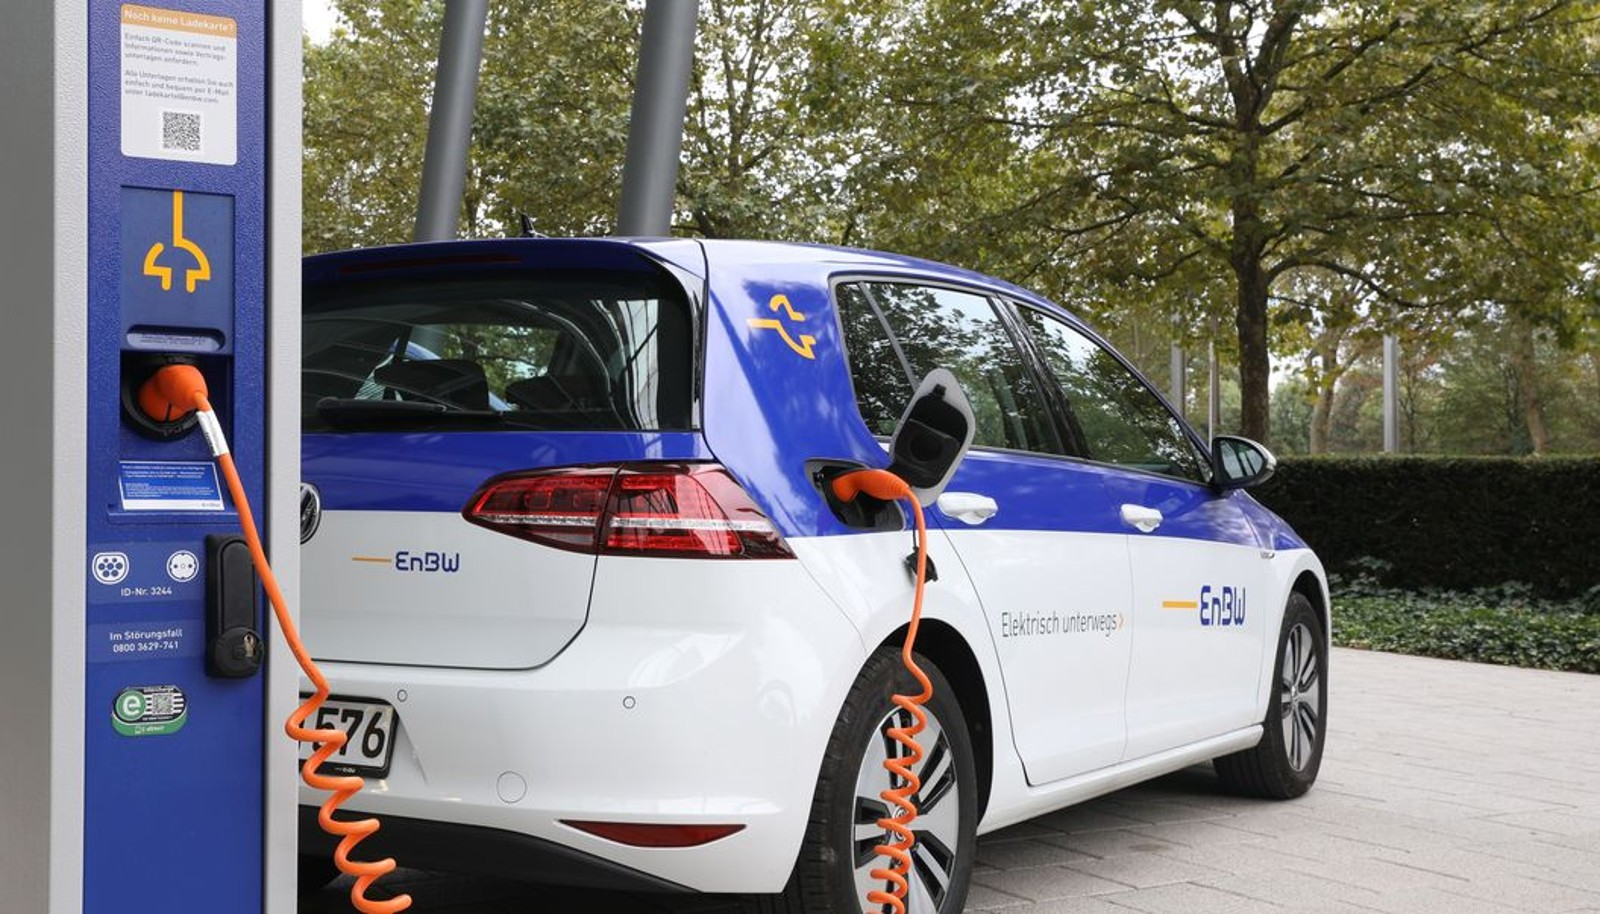 Charging Electric Vehicles Just Became Easier Enbw And